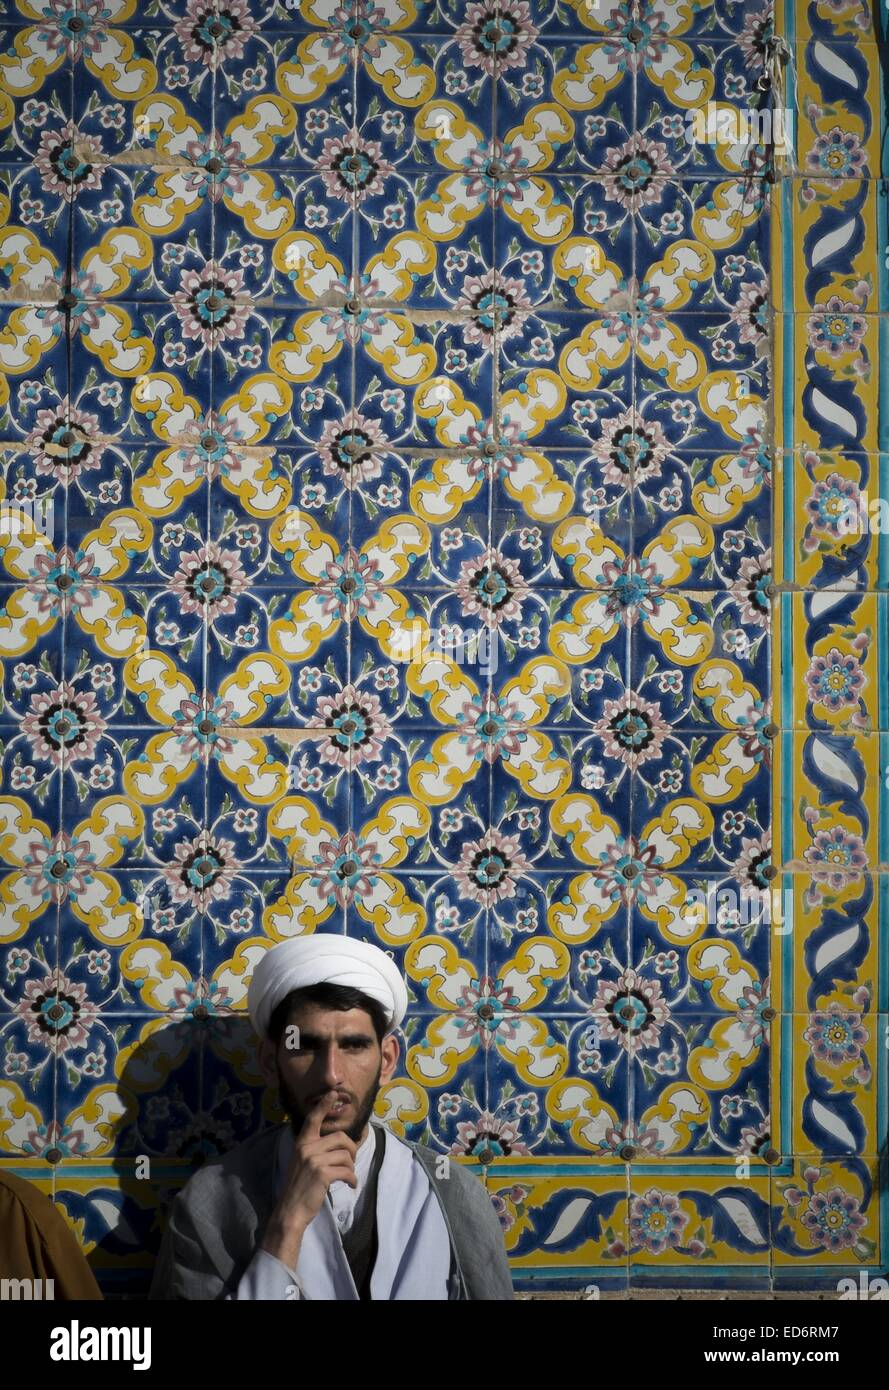 Qom, Iran. 30th Dec, 2014. An Iranian cleric looks on while attending a rally to mark December 30, 2009 demonstration - Stock Image